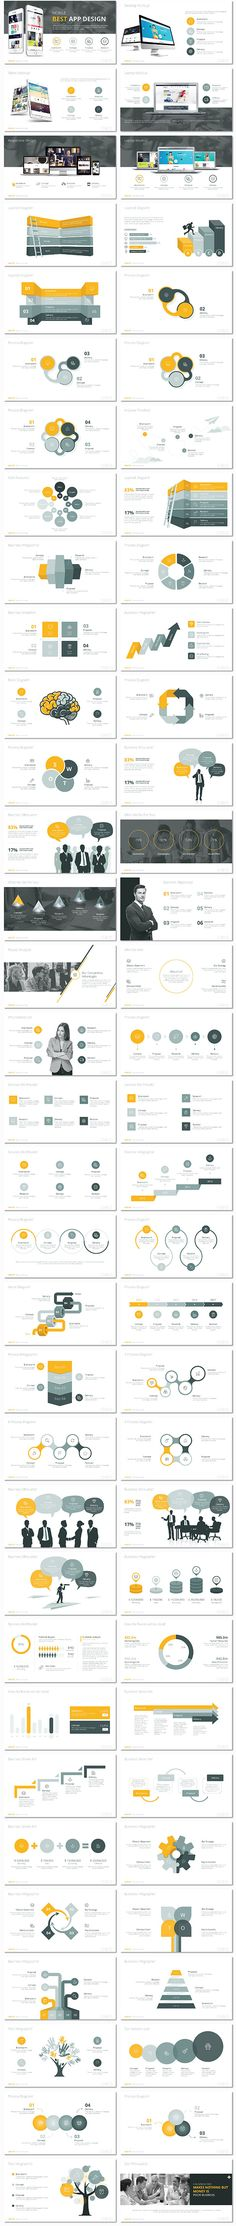 Catalyst Google Slides Catalyst Business Template for you that you need professional, clean, creative, simple presentation template. Here we focused on the real use, good readability and mea...